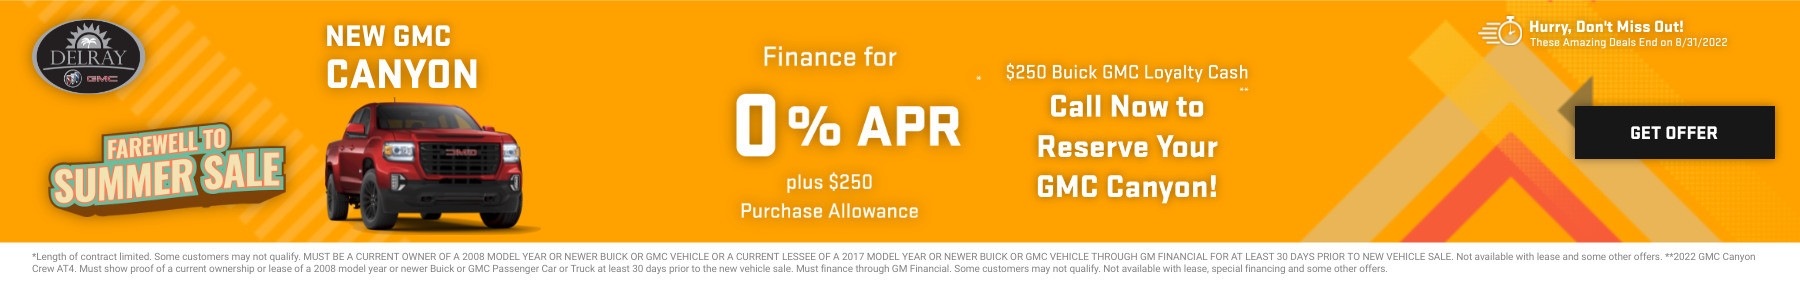 New GMC Canyon Current Deals and Offers in Delray Beach, FL